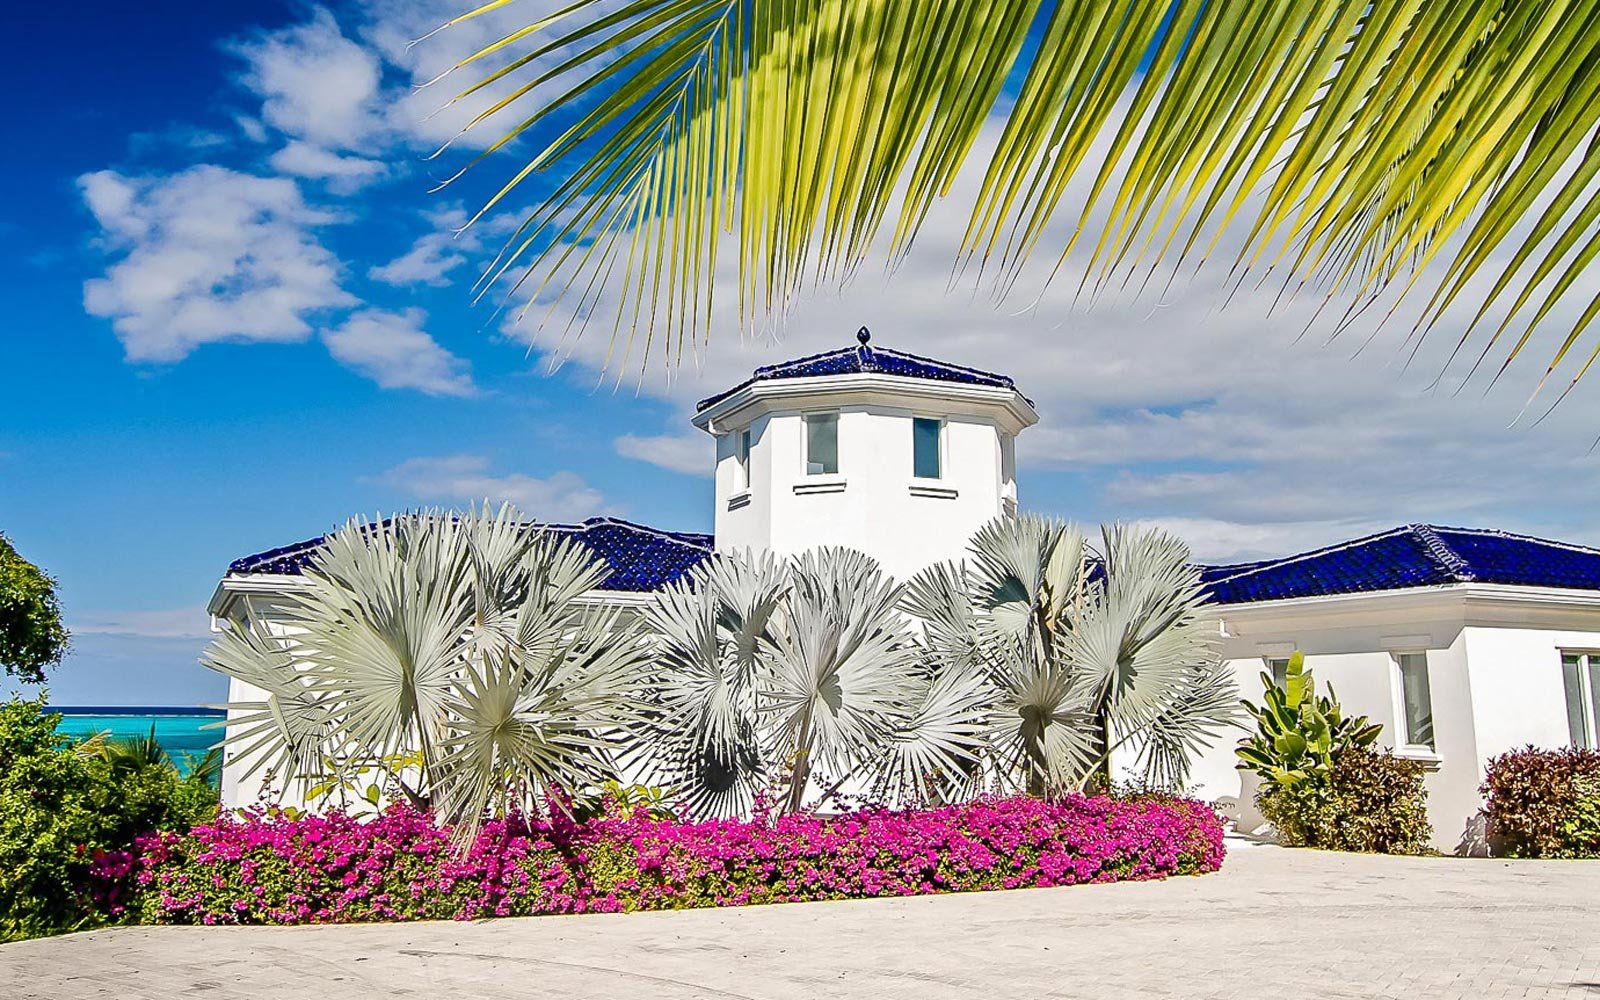 Cobalt Villa luxury villa rental in the Turks and Caicos, available from ThirdHome